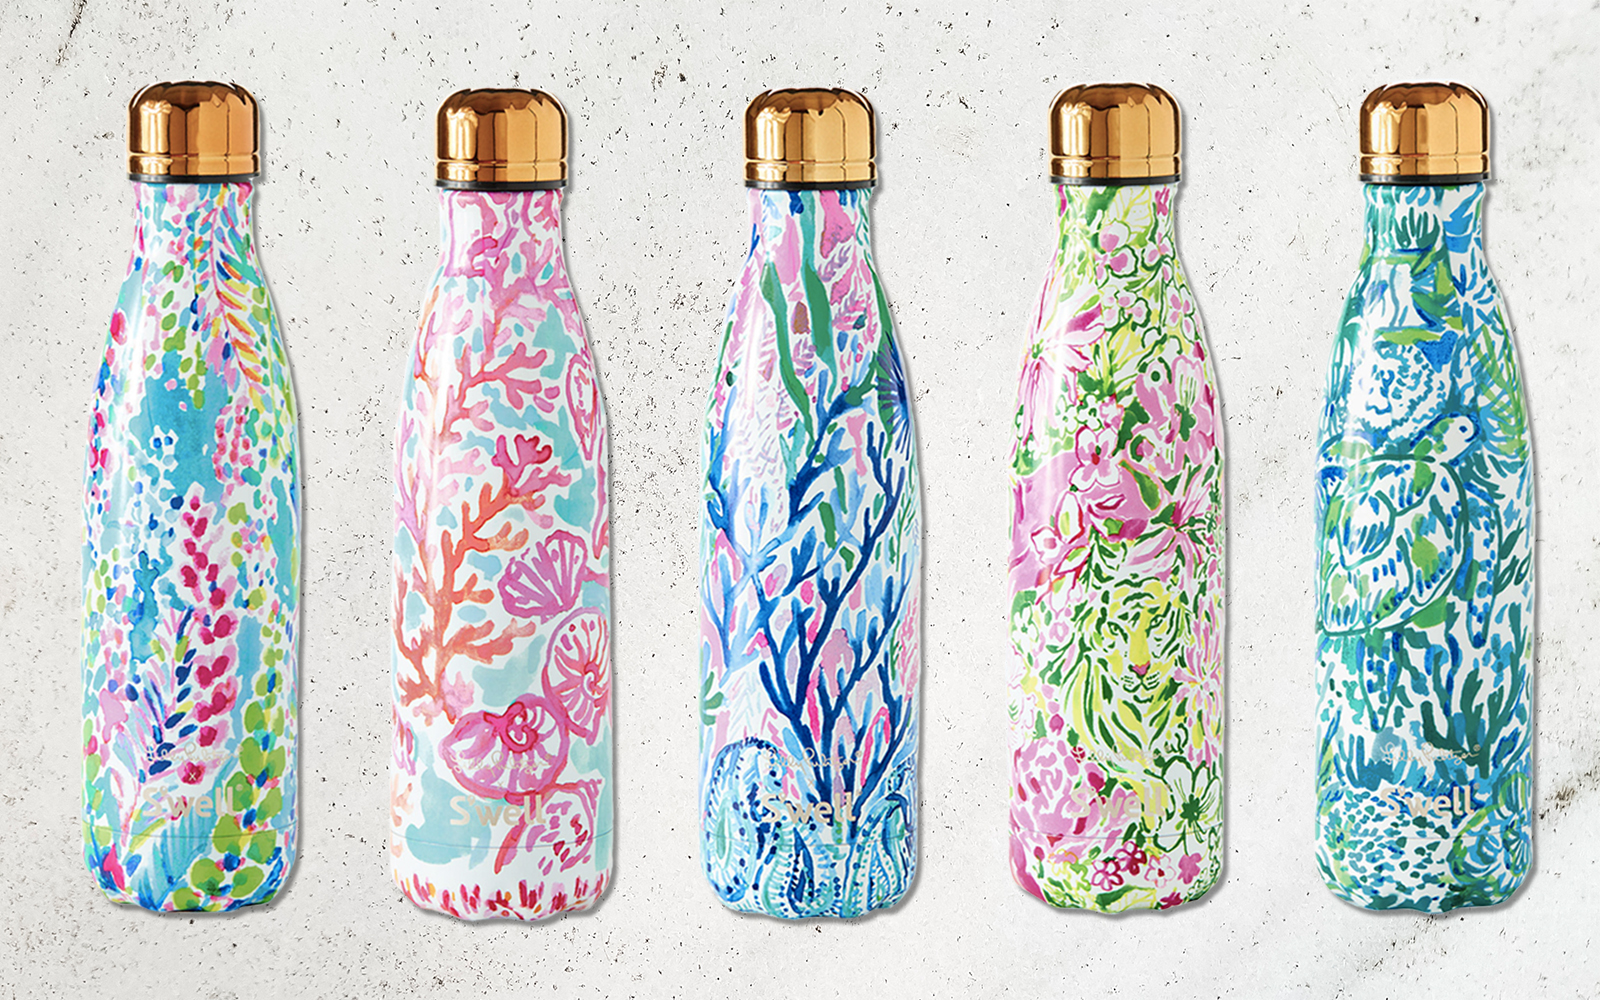 People Are Obsessed With These Lilly Pulitzer S'Well Bottles — and They'll Be 40% Off for One Day Only